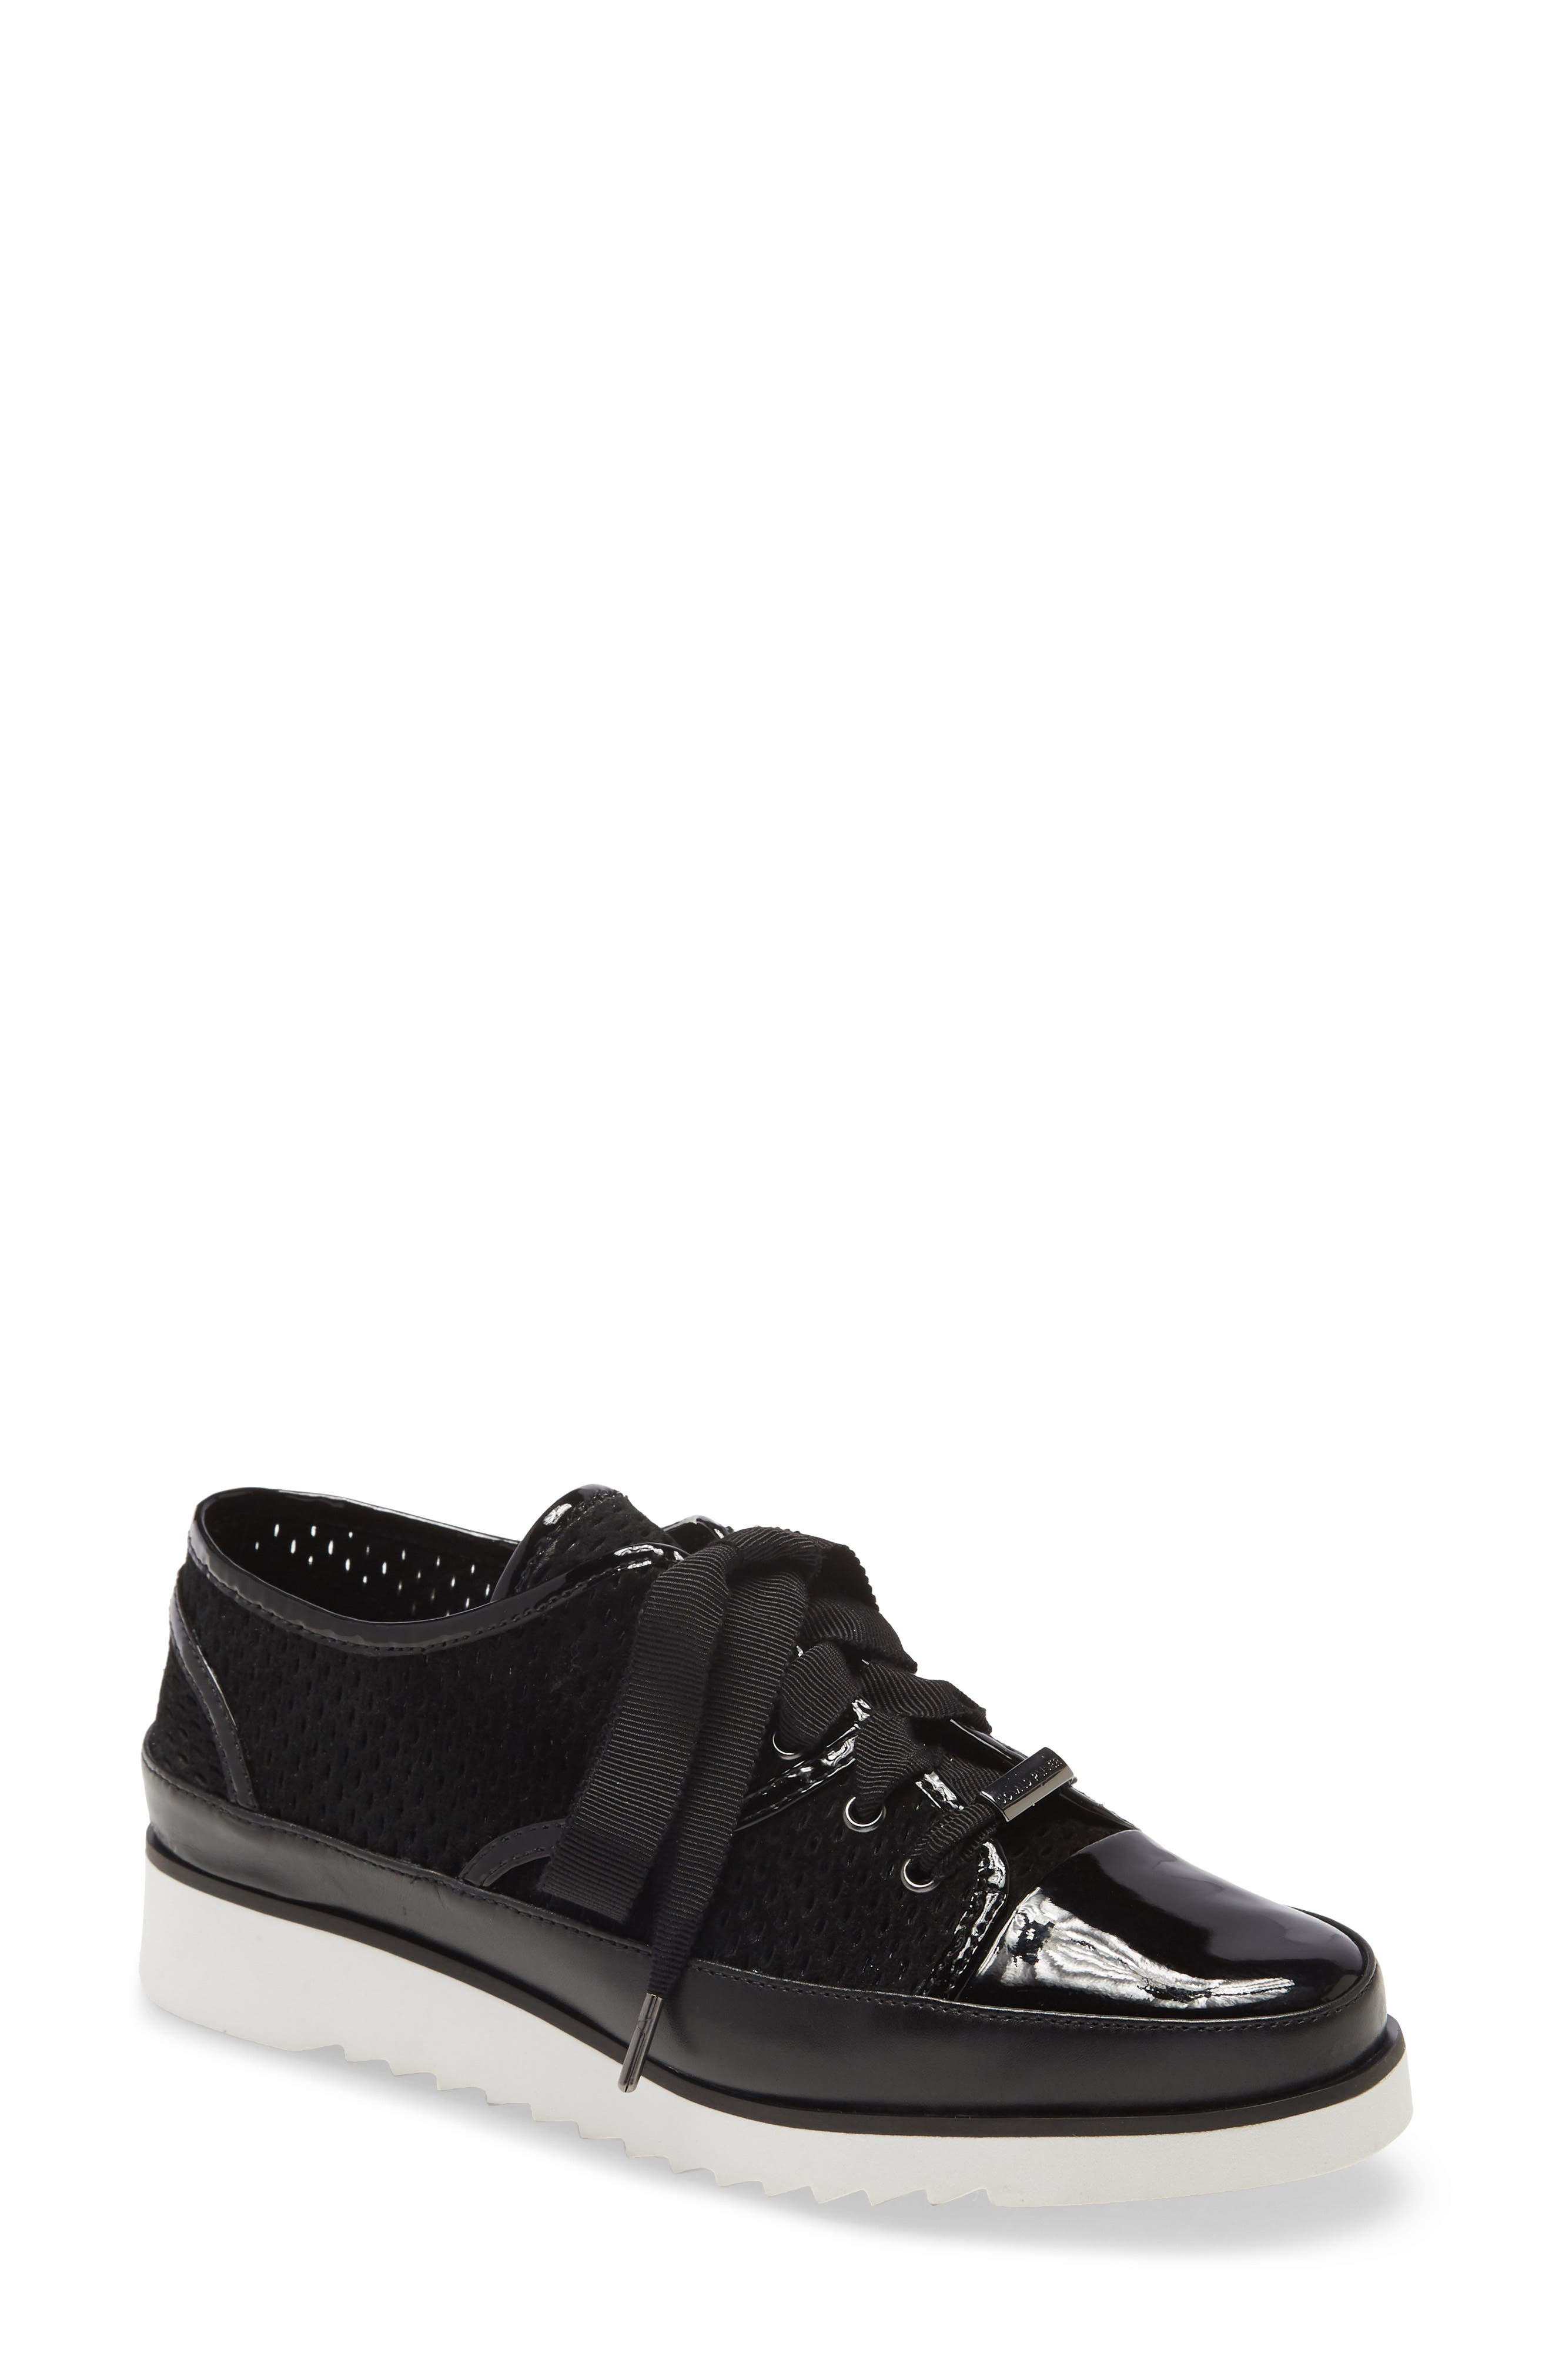 Image of Donald Pliner Flipp Perforated Leather Sneaker